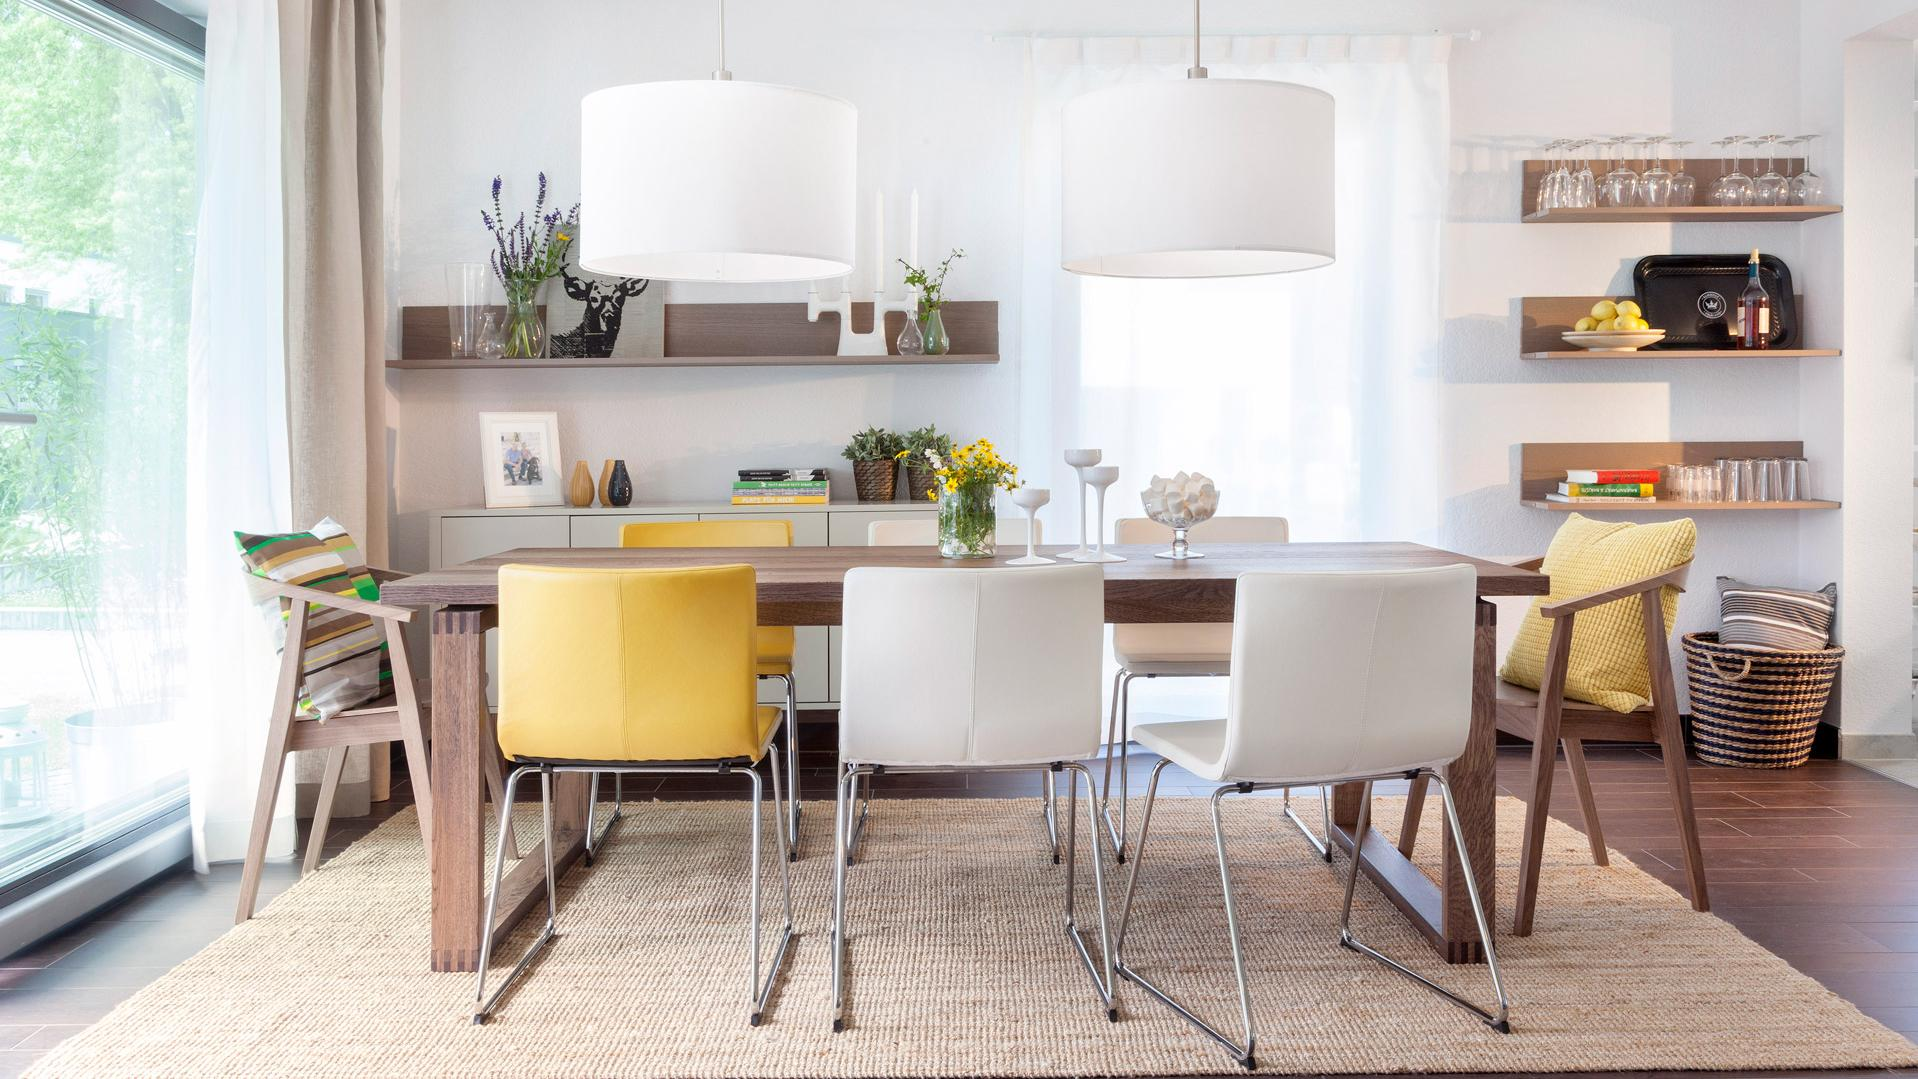 Modern dining room equipped by Ikea